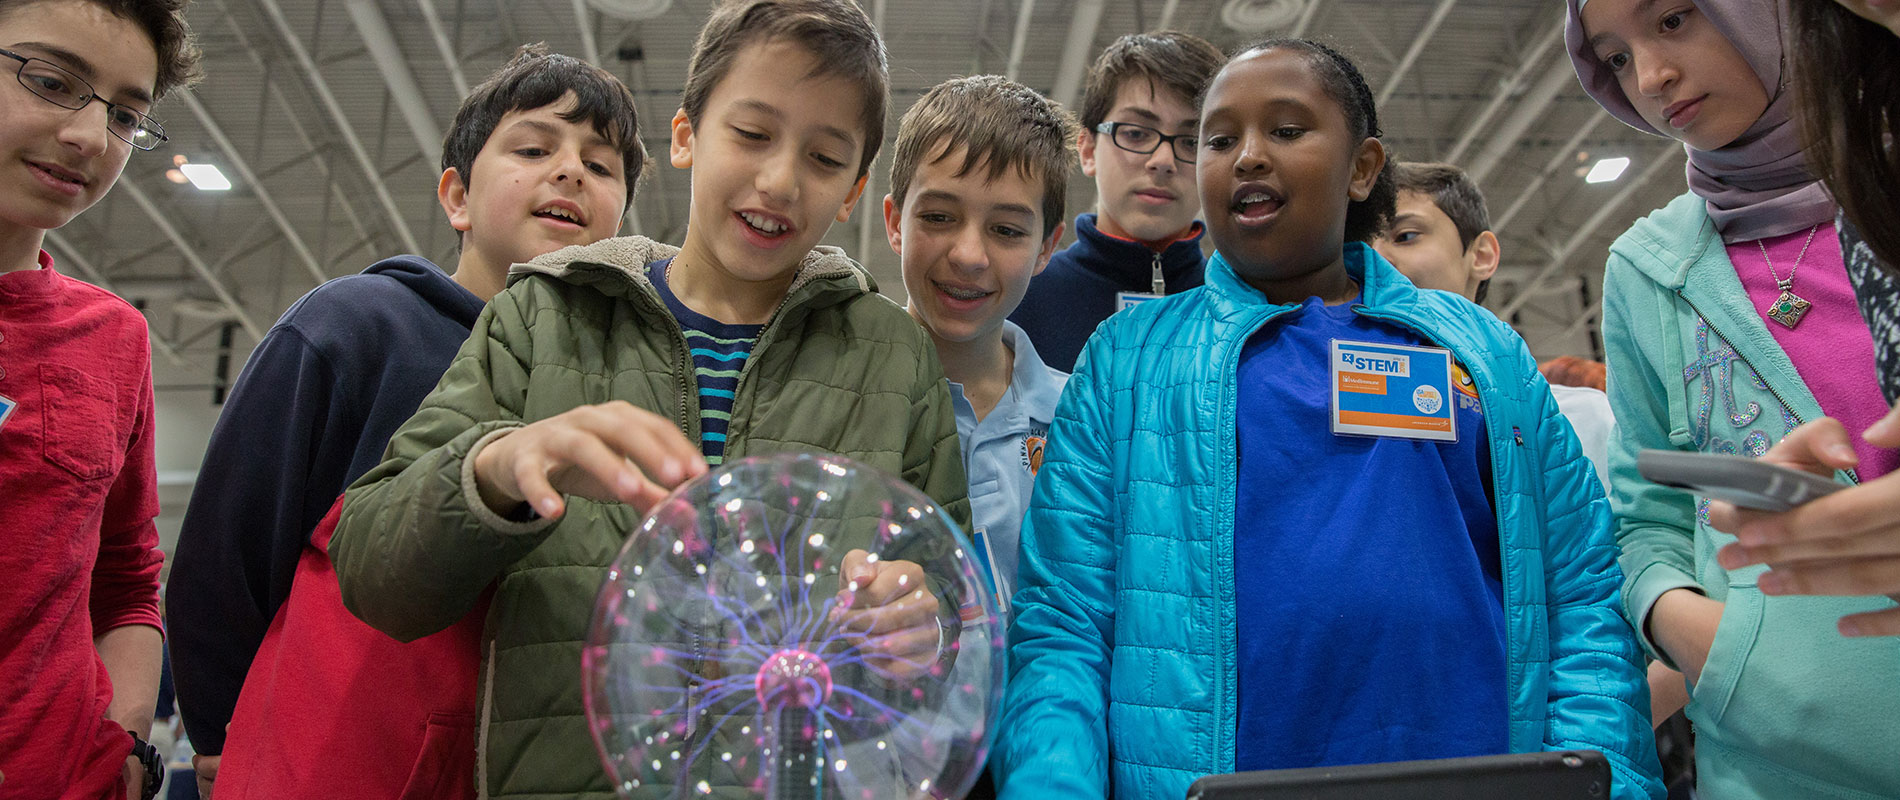 The nation's largest science festival